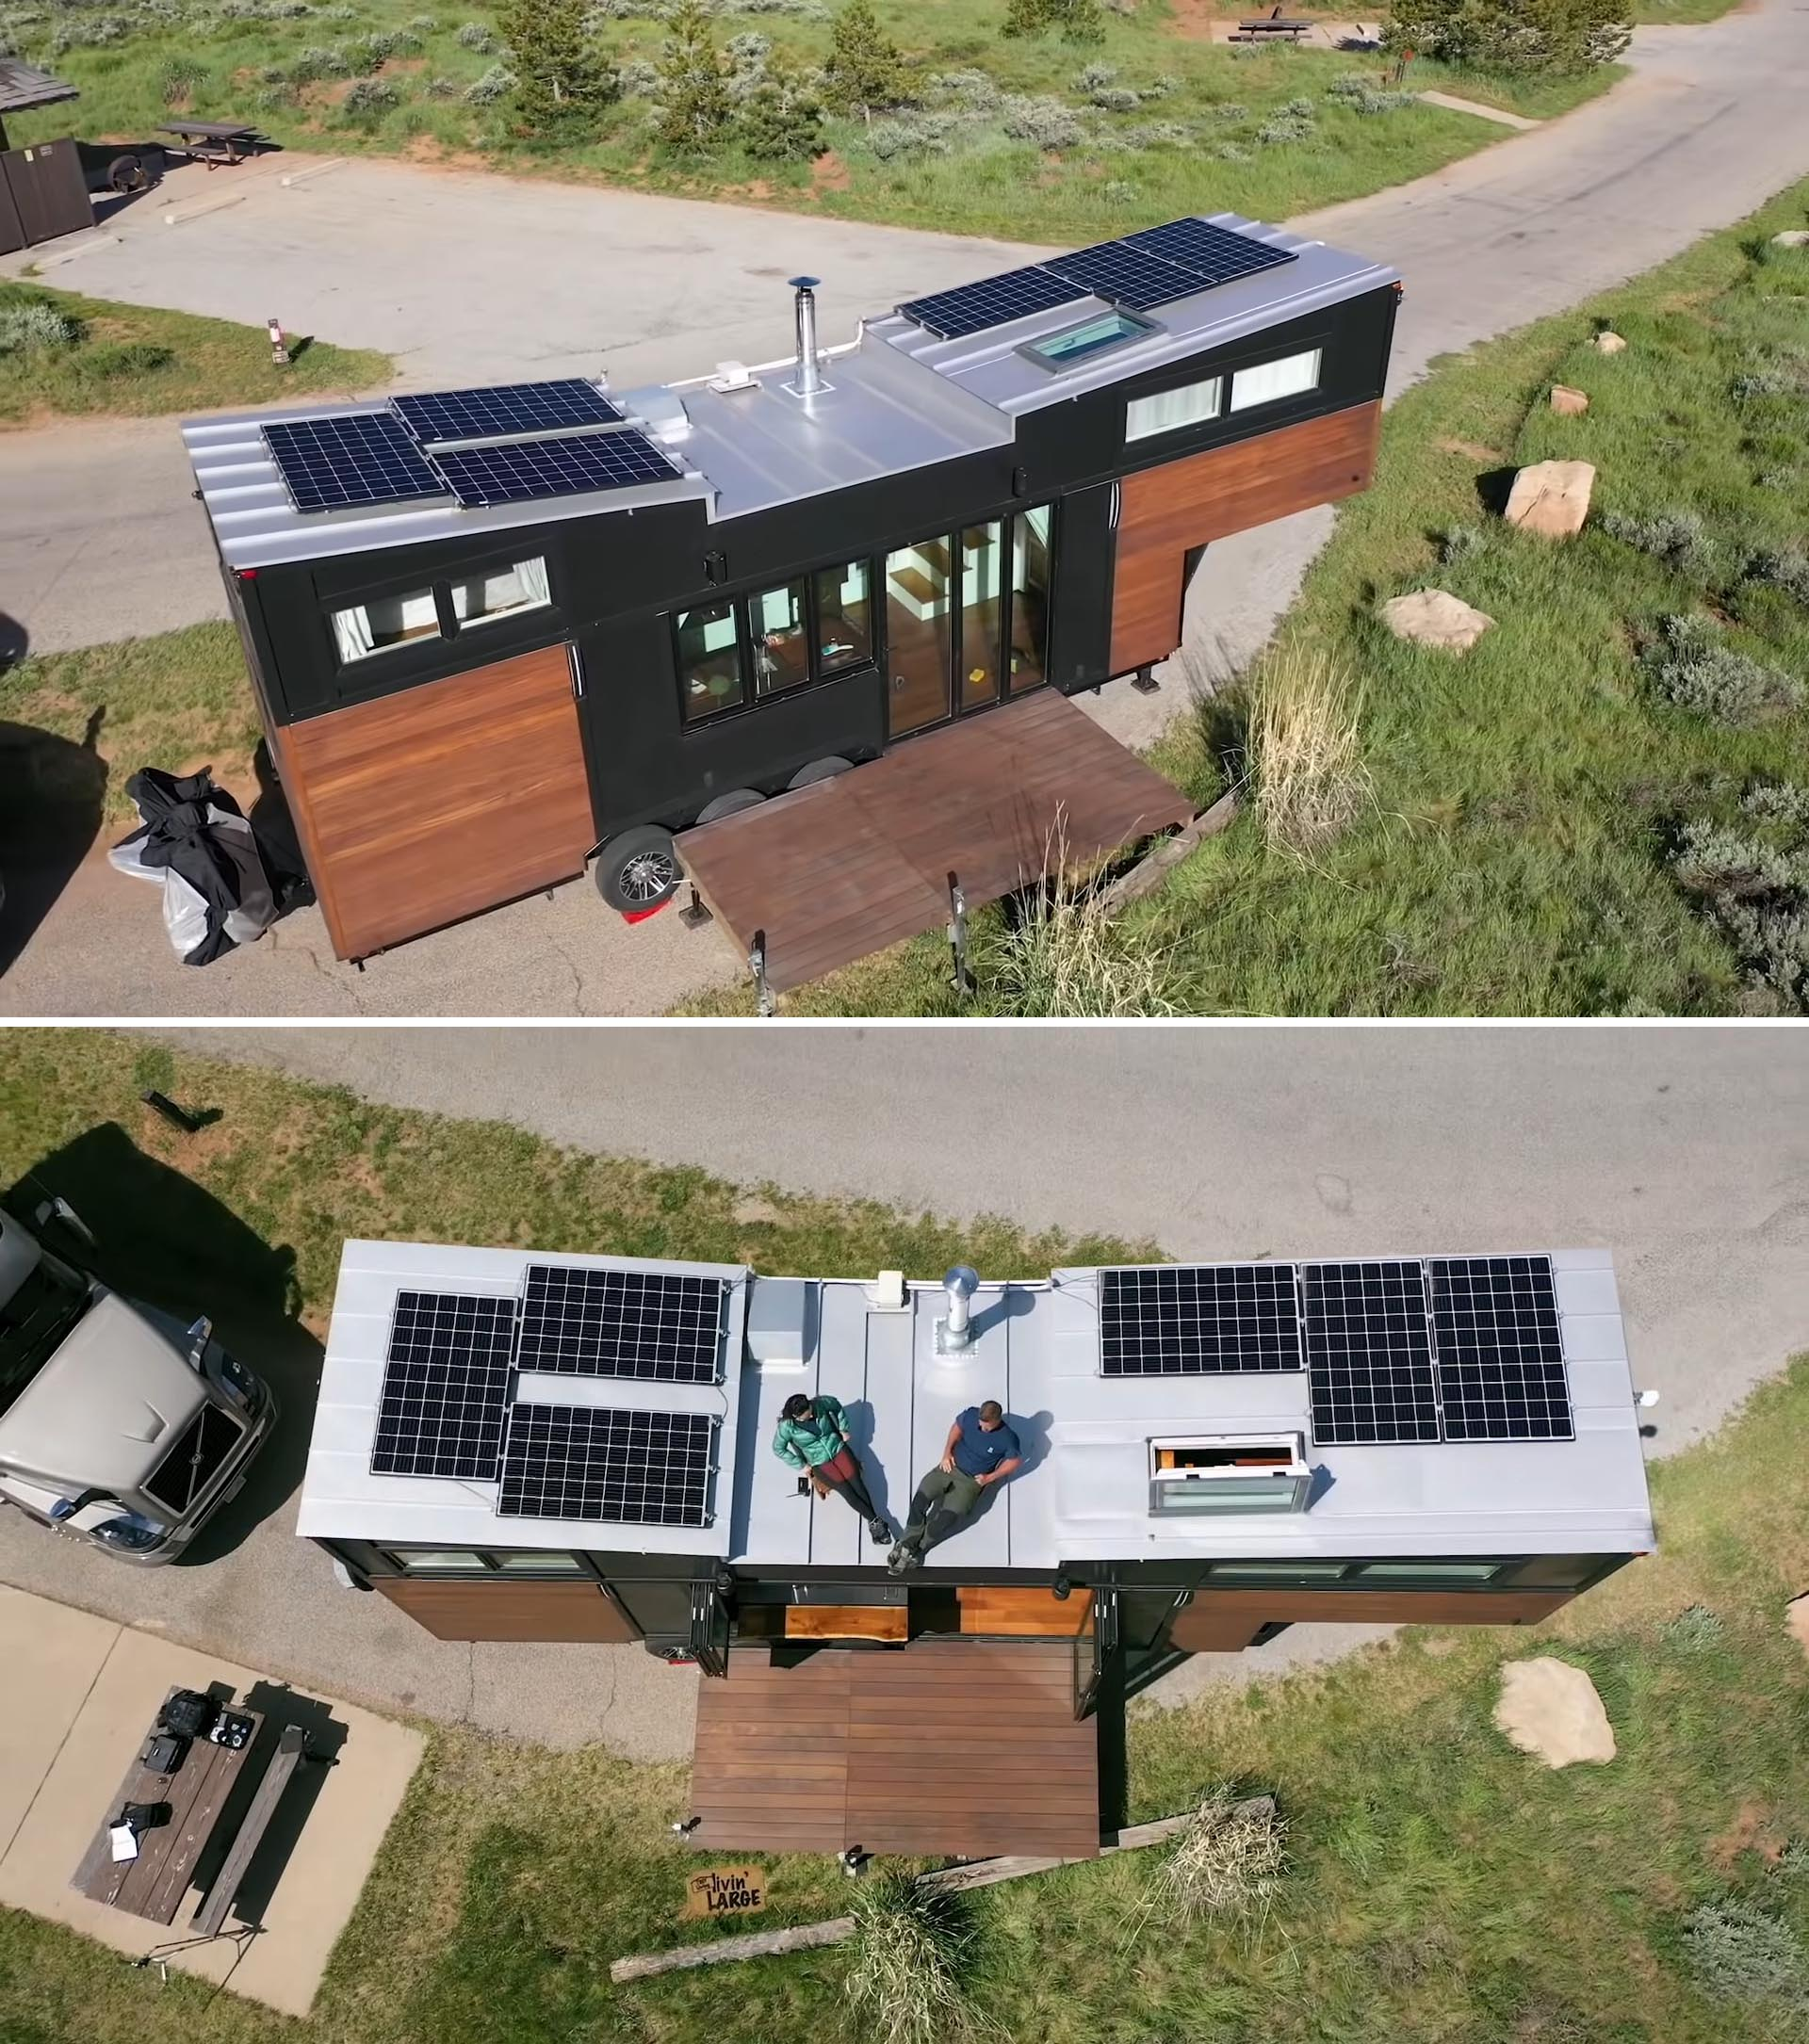 A high-end tiny house with solar panels and a removable deck.